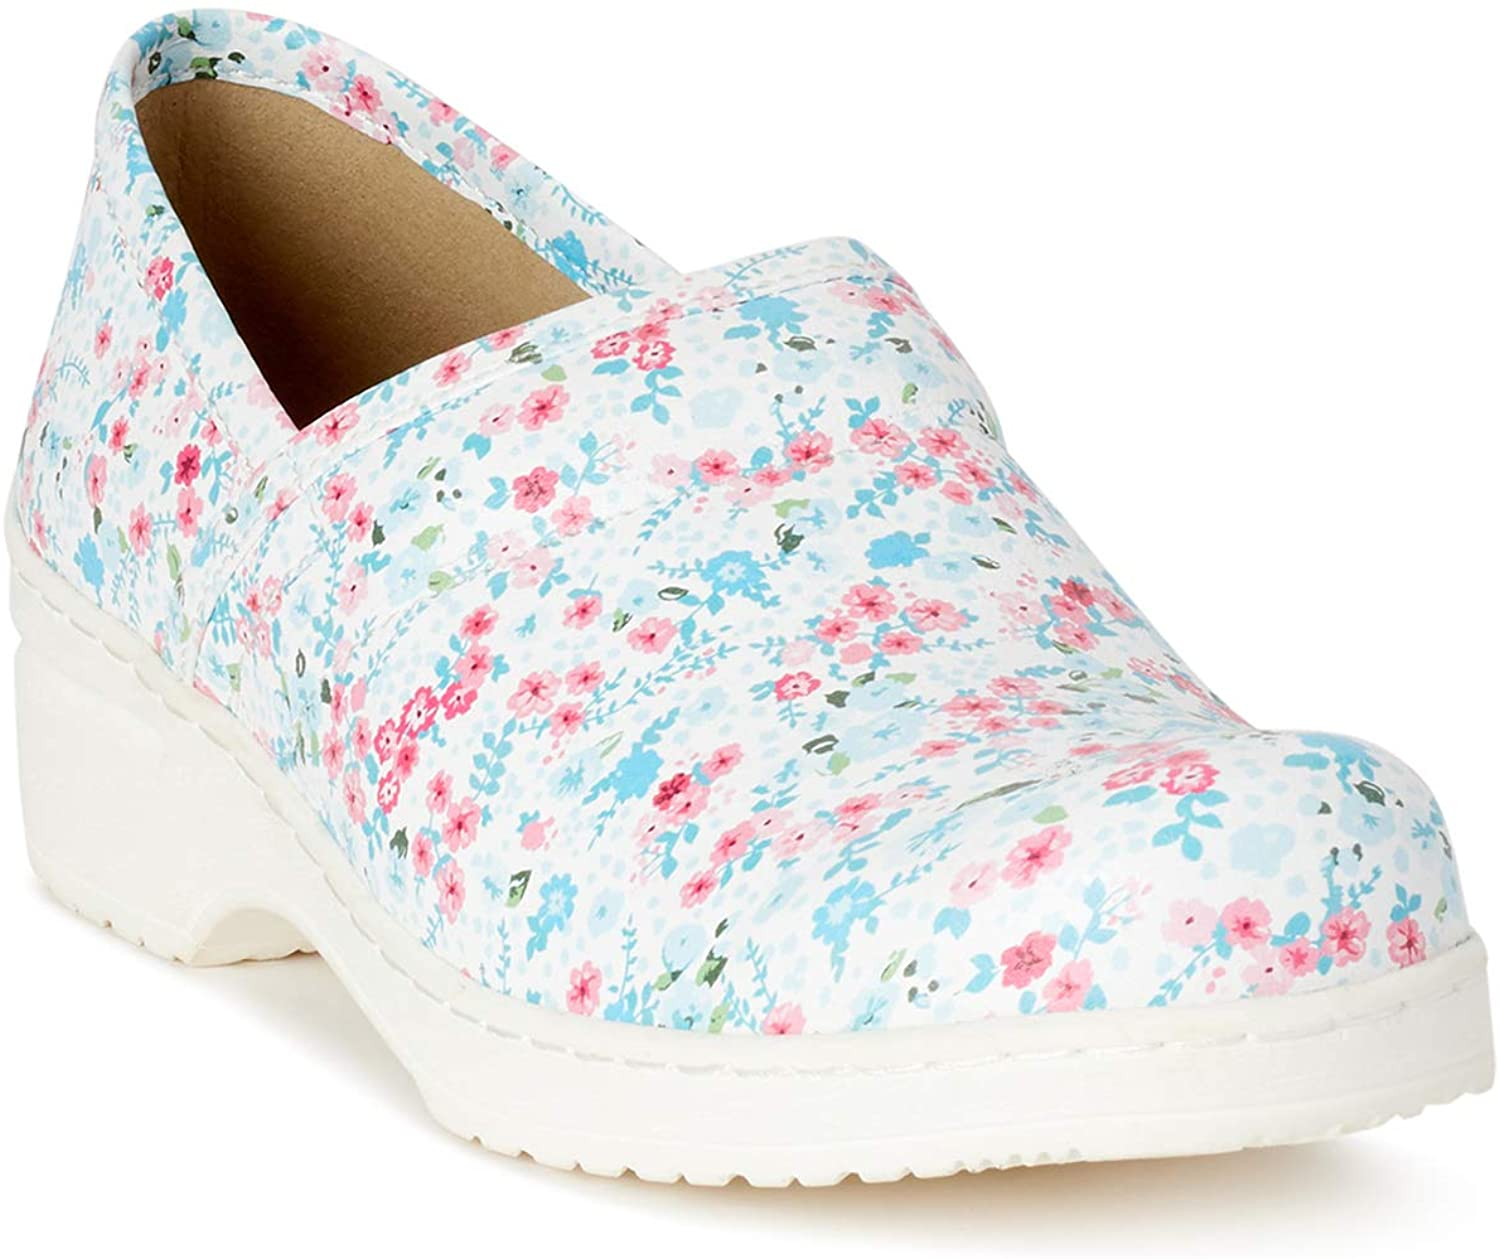 Ohmm Slip Resistant Professional Clogs for Women in Classic Solids and Fun Prints